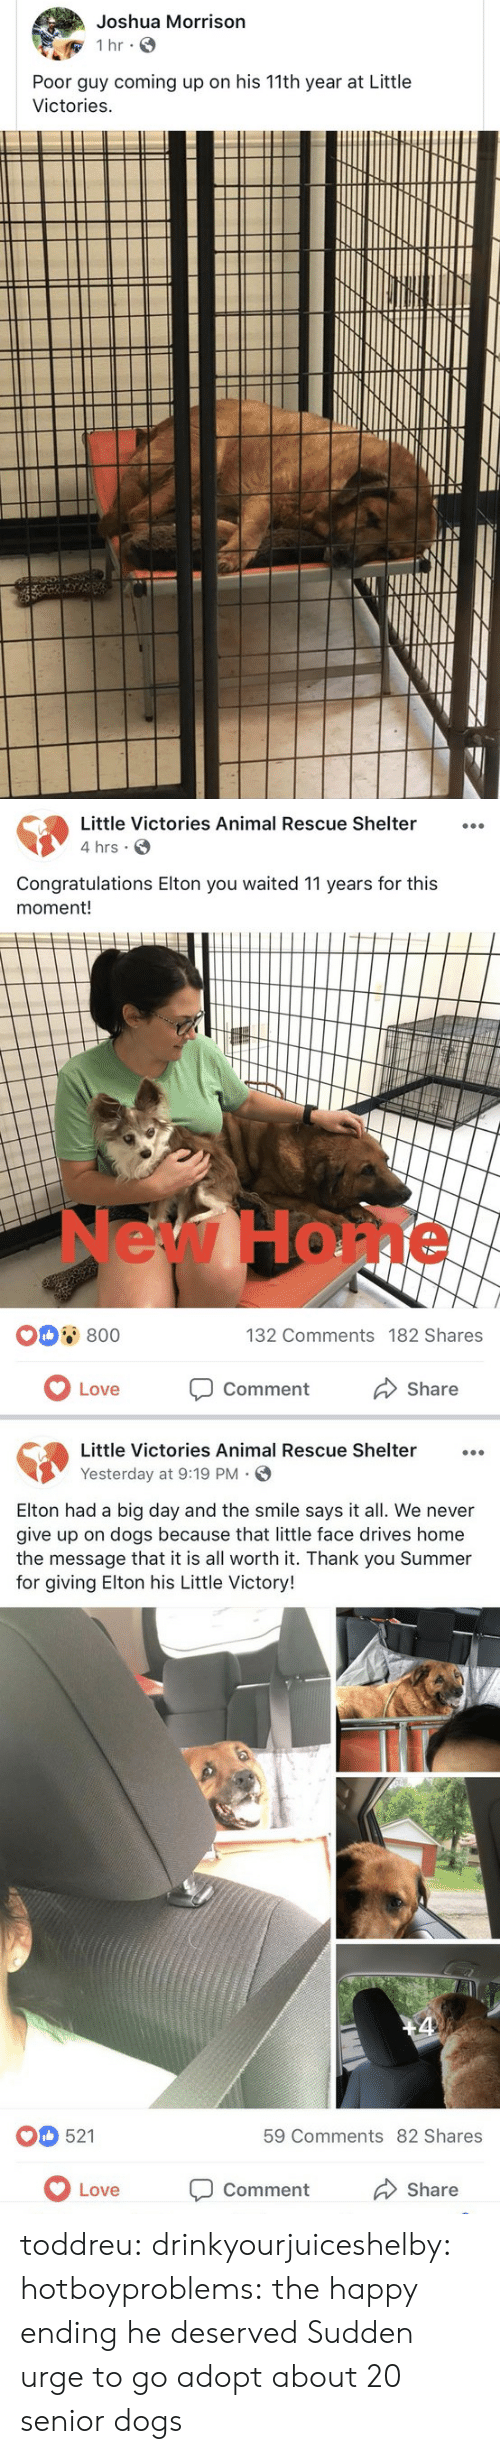 Elton: Joshua Morrison  Poor guy coming up on his 11th year at Little  Victories   Little Victories Animal Rescue Shelter...  4 hrs  Congratulations Elton you waited 11 years for this  moment!  New Home  0 800  132 Comments 182 Shares  OLove  Comment  Share   Little Victories Animal Rescue Shelter  Yesterday at 9:19 PM.  Elton had a big day and the smile says it all. We never  give up on dogs because that little face drives home  the message that it is all worth it. Thank you Summer  for giving Elton his Little Victory!  521  59 Comments 82 Shares  Love Comment  Share toddreu:  drinkyourjuiceshelby:  hotboyproblems: the happy ending he deserved   Sudden urge to go adopt about 20 senior dogs